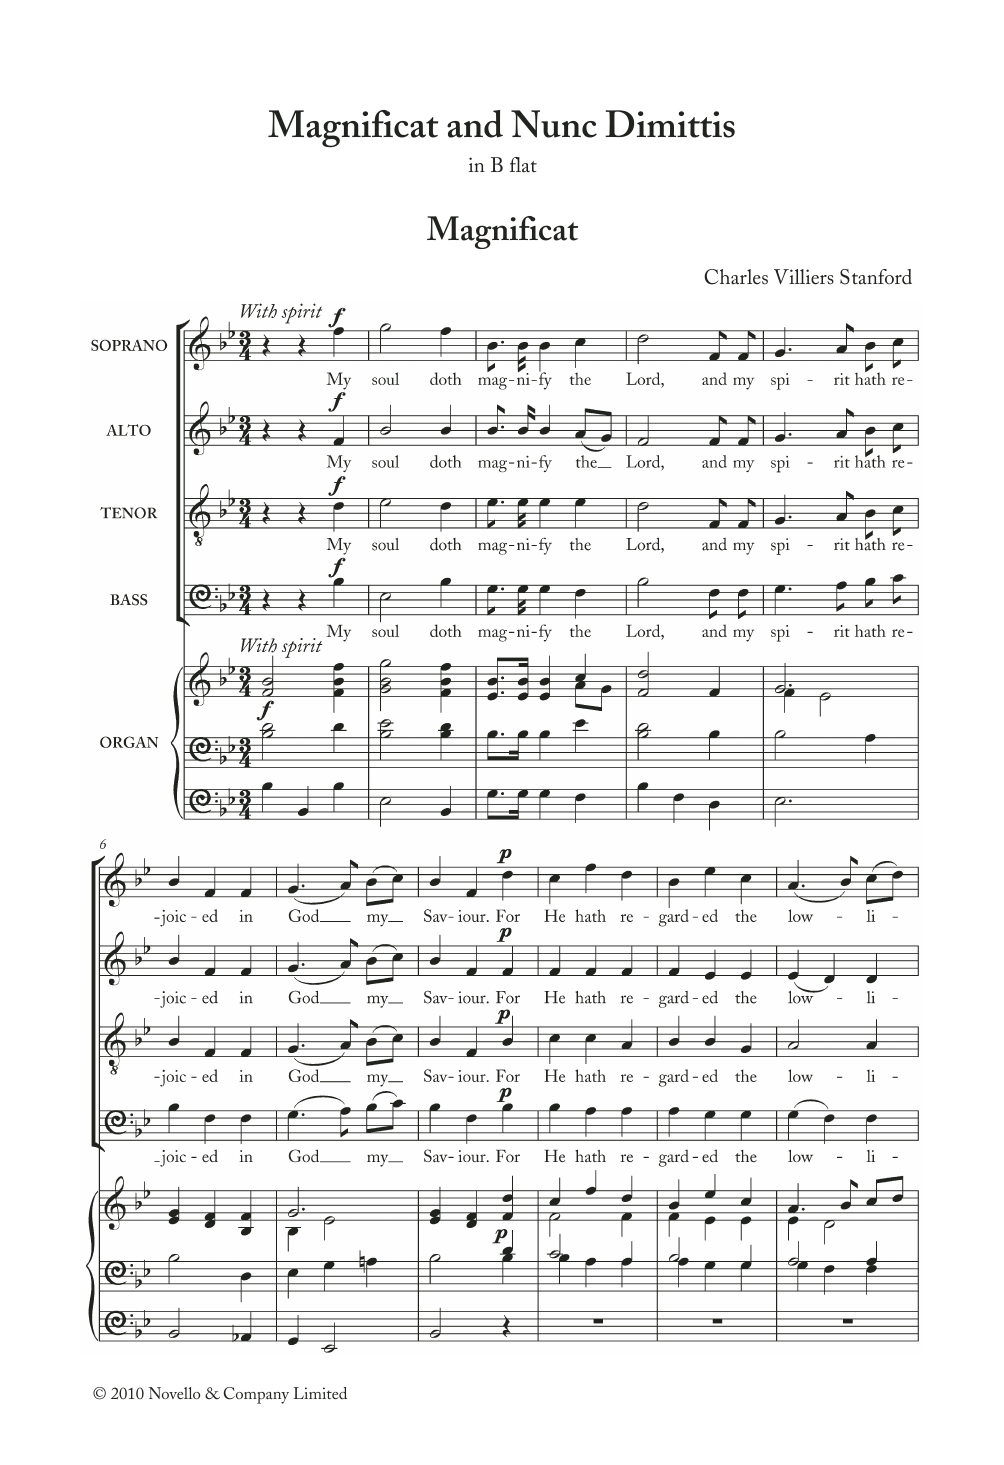 Charles Villiers Stanford - Magnificat And Nunc Dimittis In B Flat